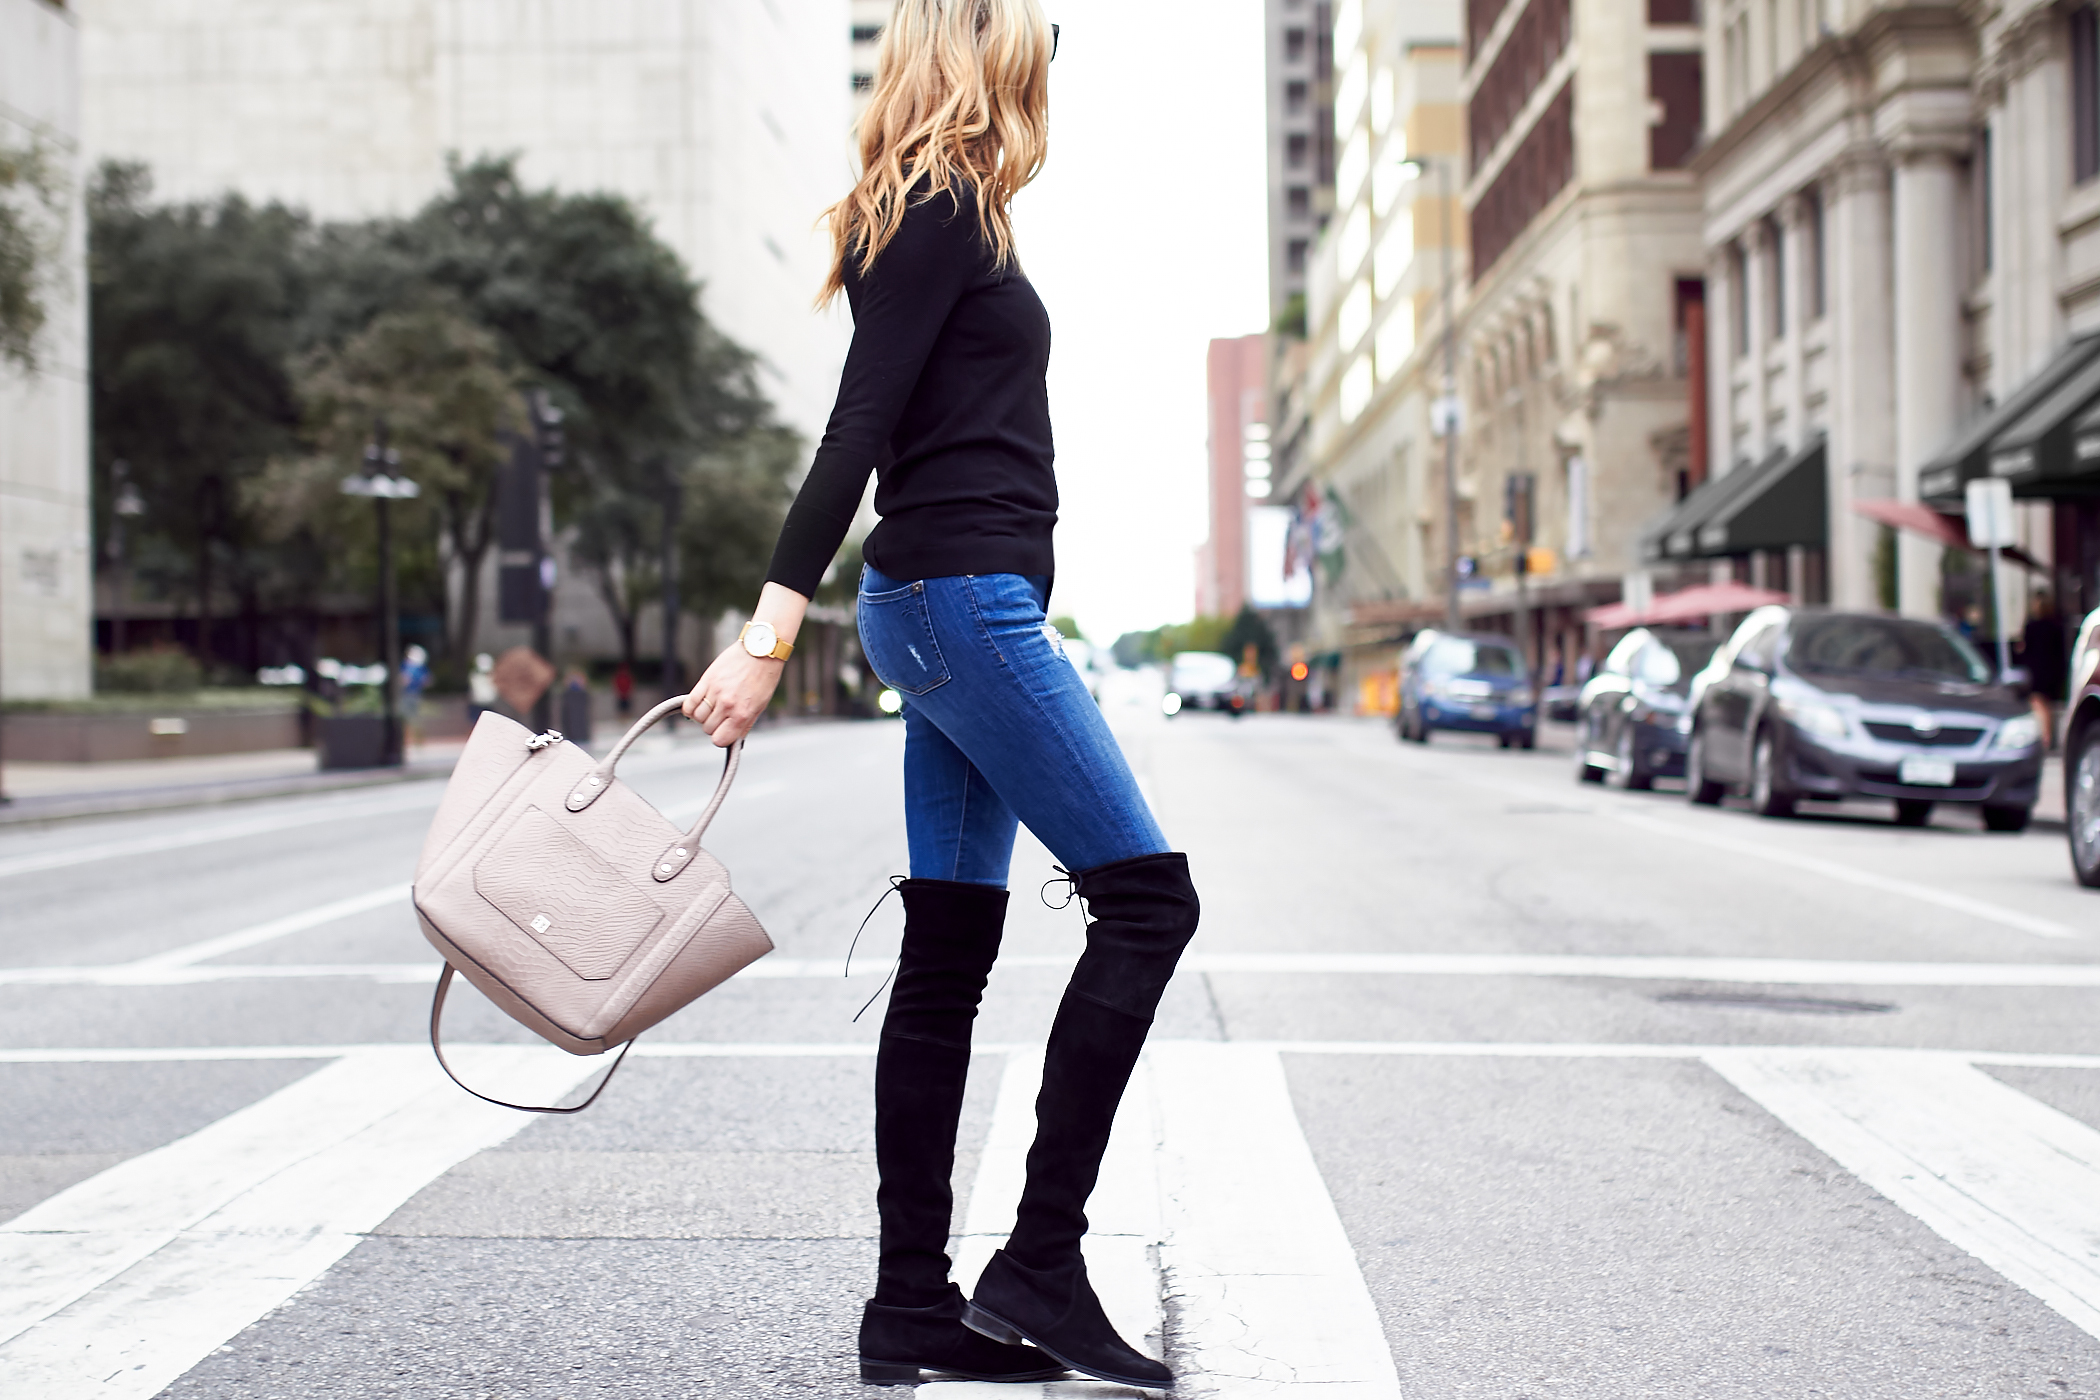 fashion-jackson-ivanka-trump-tribeca-leather-tote-pale-taupe-black-sweater-denim-skinny-jeans-black-over-the-knee-boots